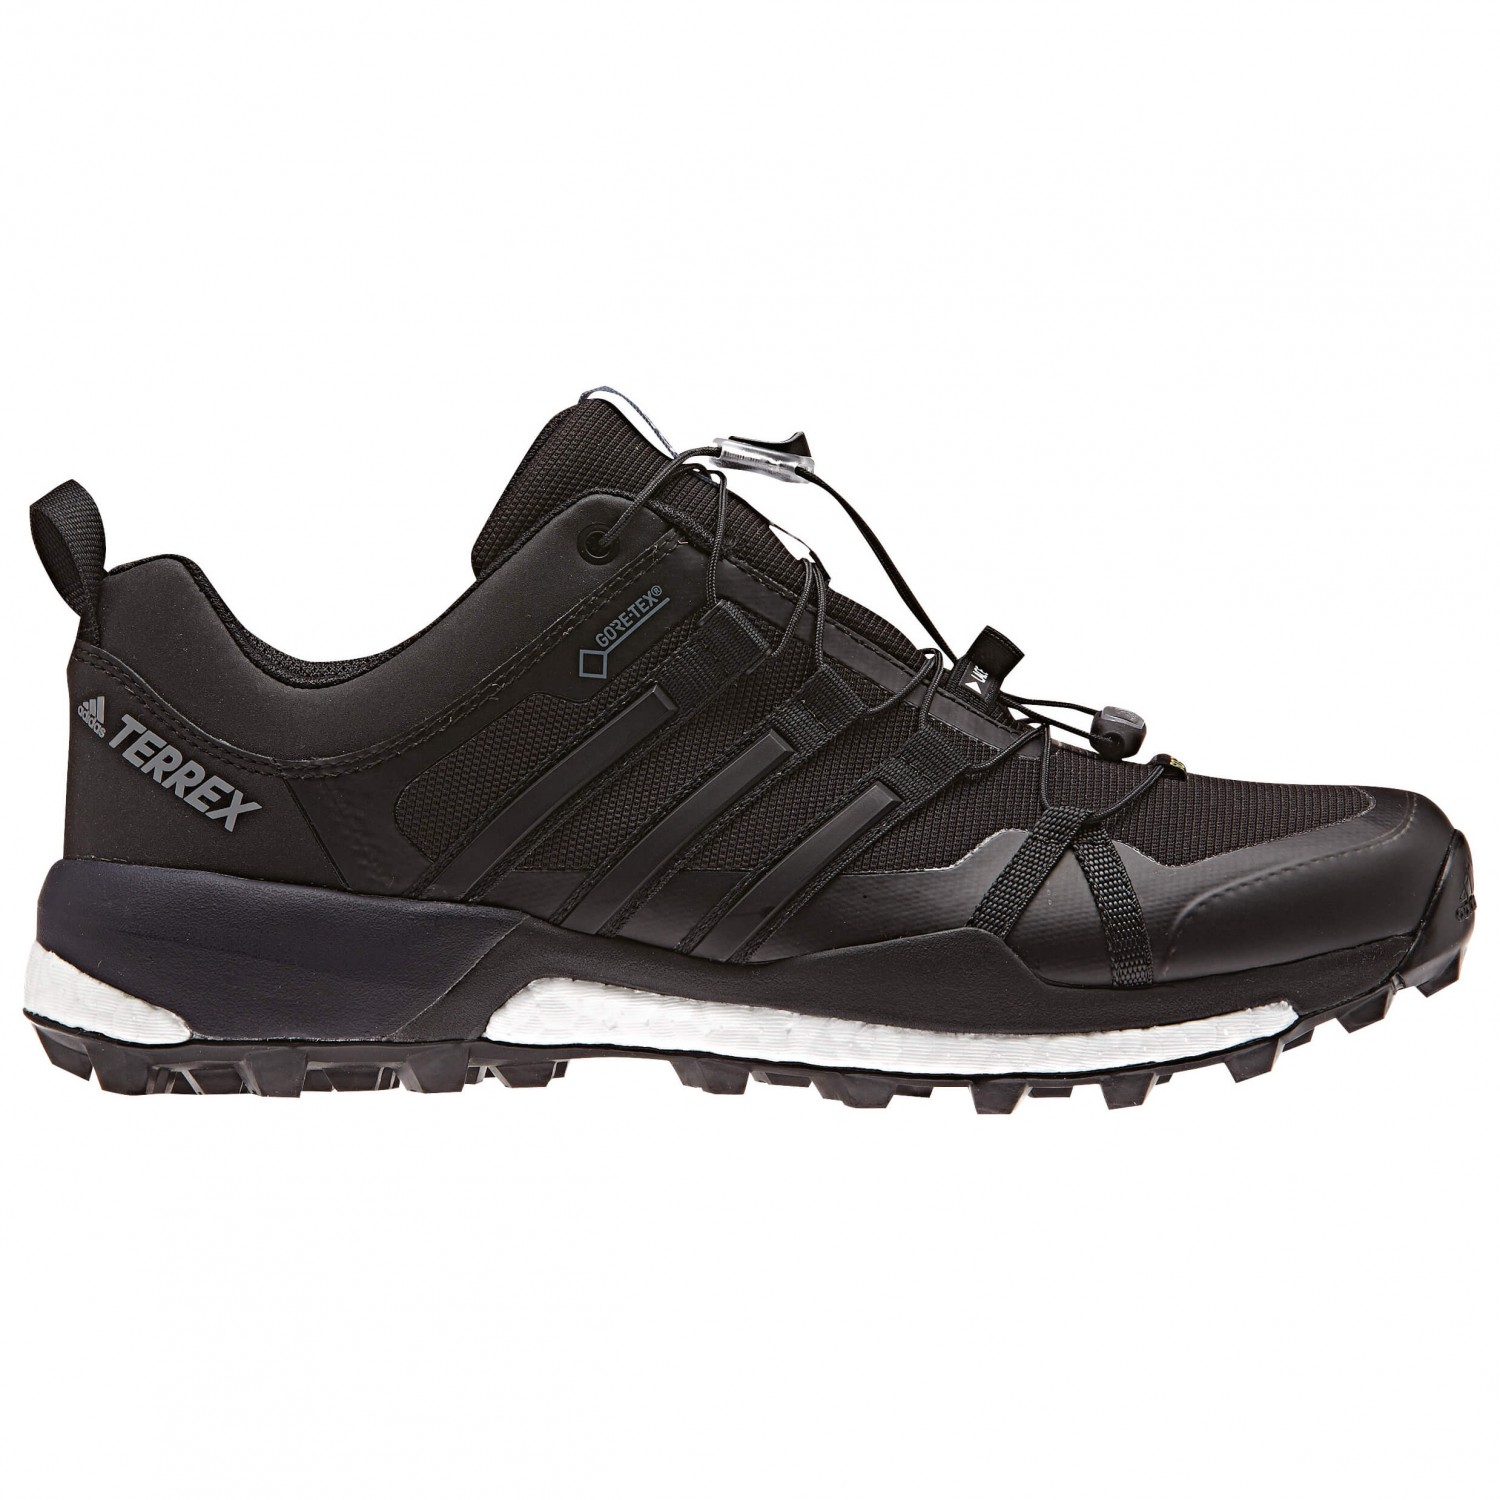 adidas terrex skychaser gtx approach shoes men 39 s free. Black Bedroom Furniture Sets. Home Design Ideas